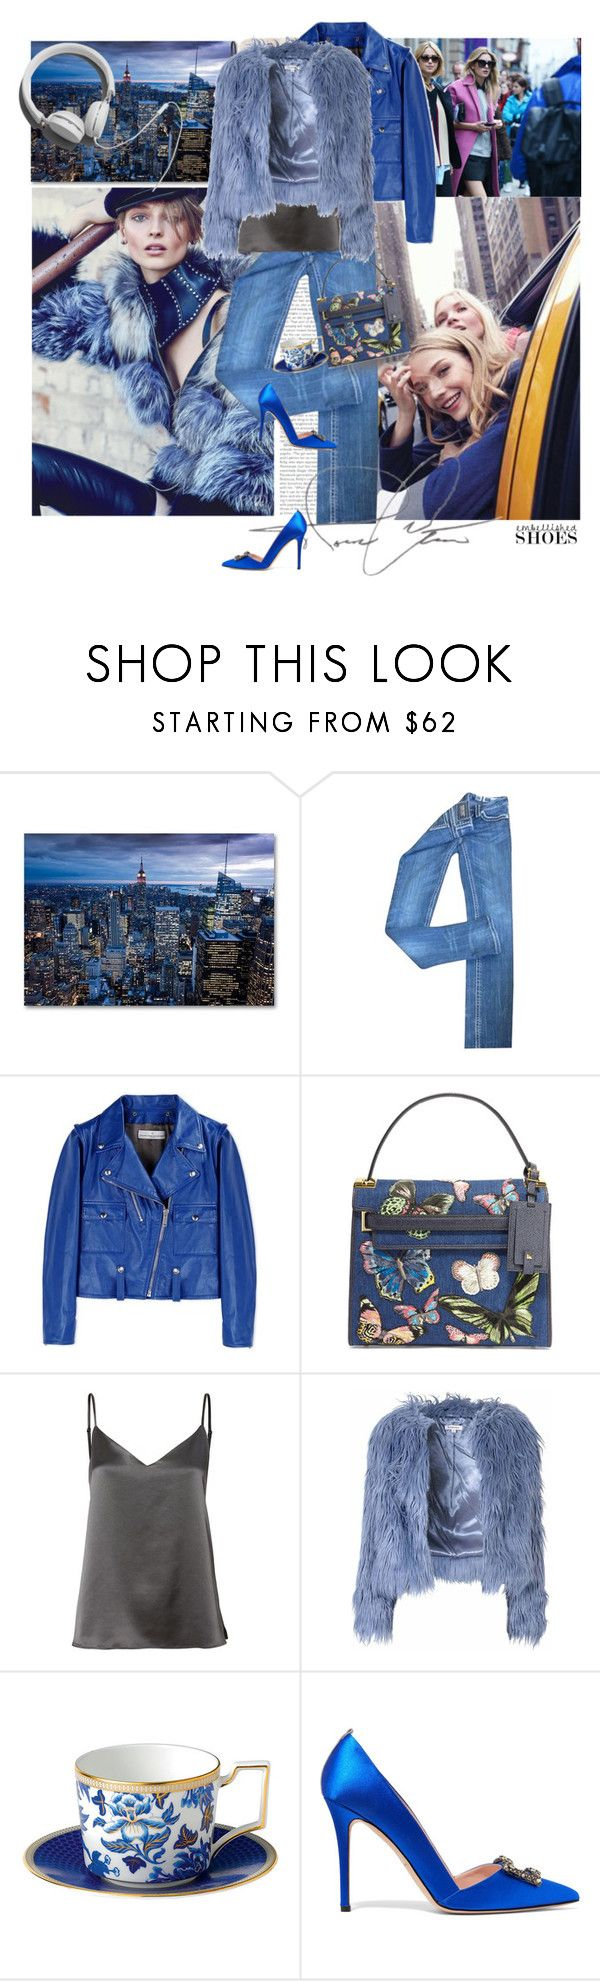 """""""MAGIC SLIPPERS"""" by blogthegoodlife ❤ liked on Polyvore featuring Miss Me, Golden Goose, Valentino, L'Agence, Glamorous, Wedgwood, Garance Doré, SJP and embellishedshoes"""